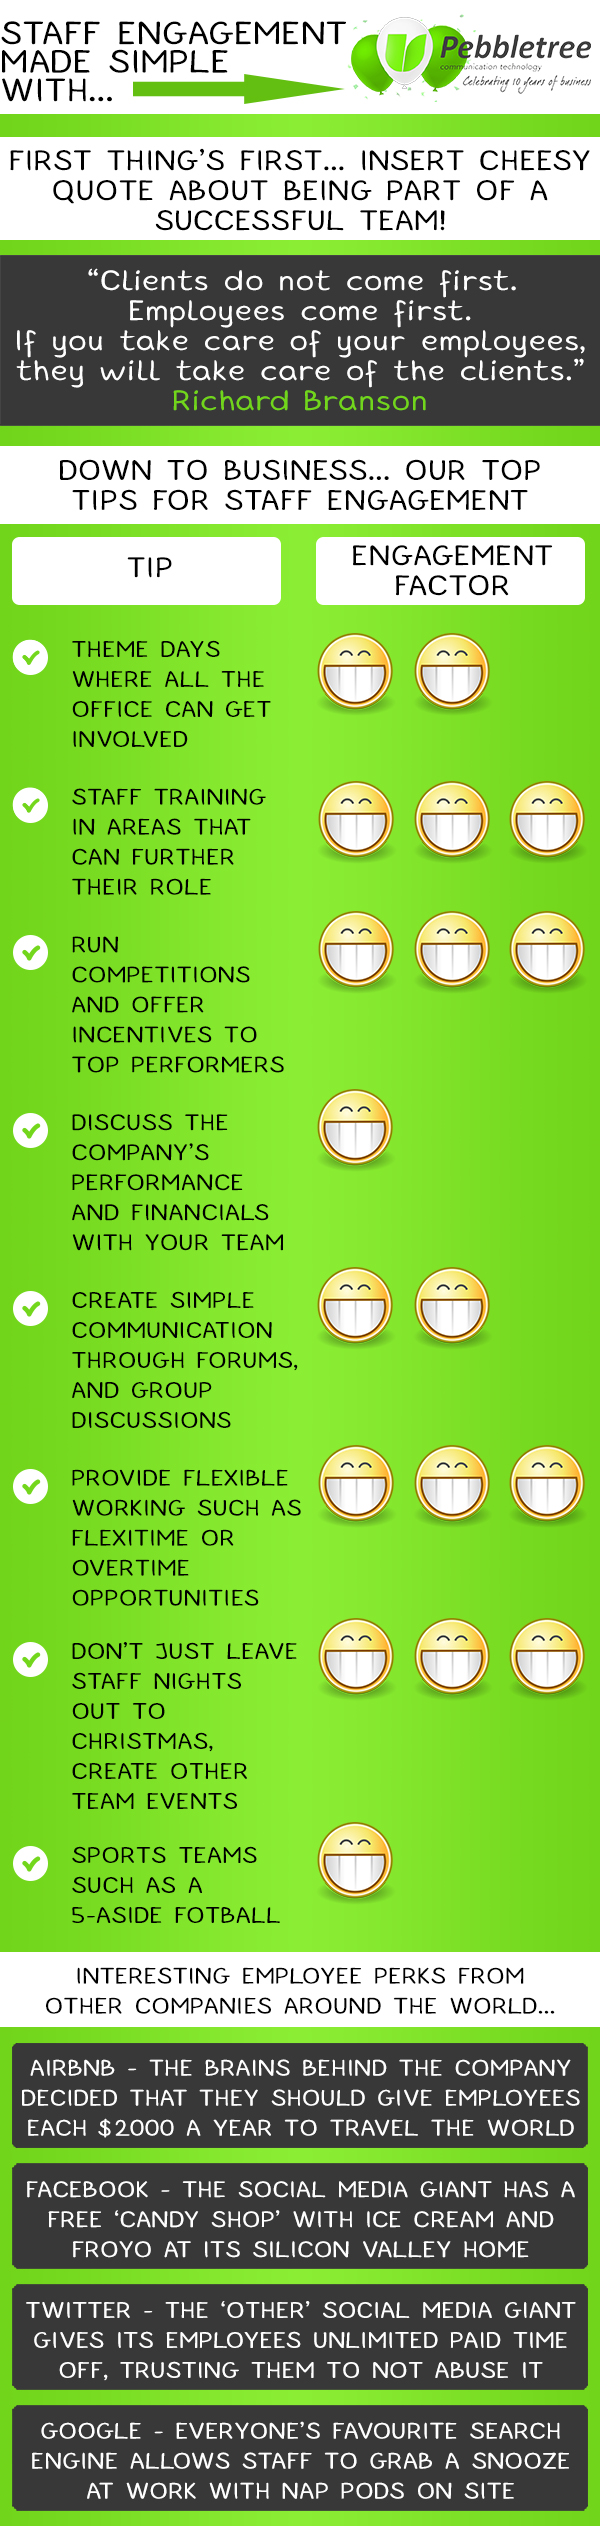 Staff engagement made simple